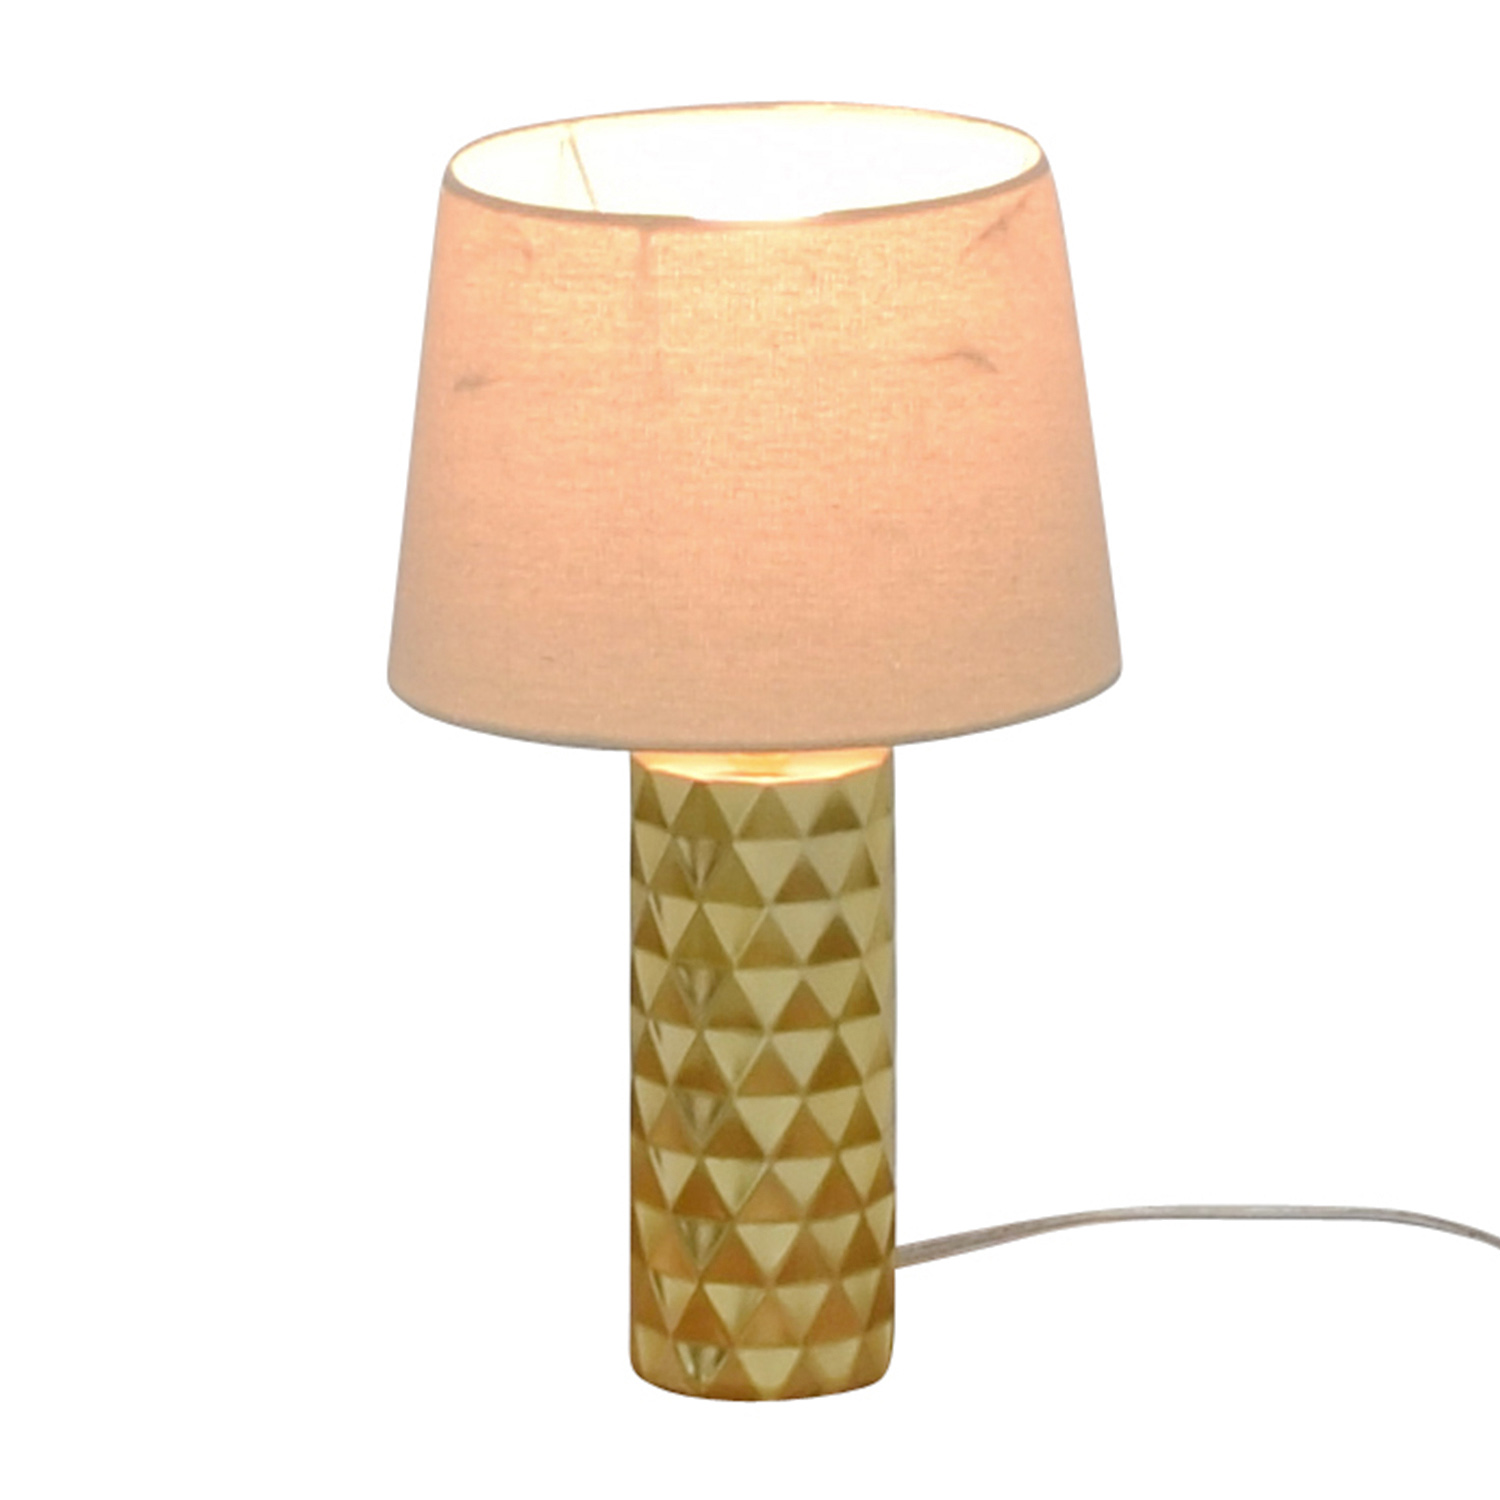 36 Off Target Target Gold Table Lamp Decor